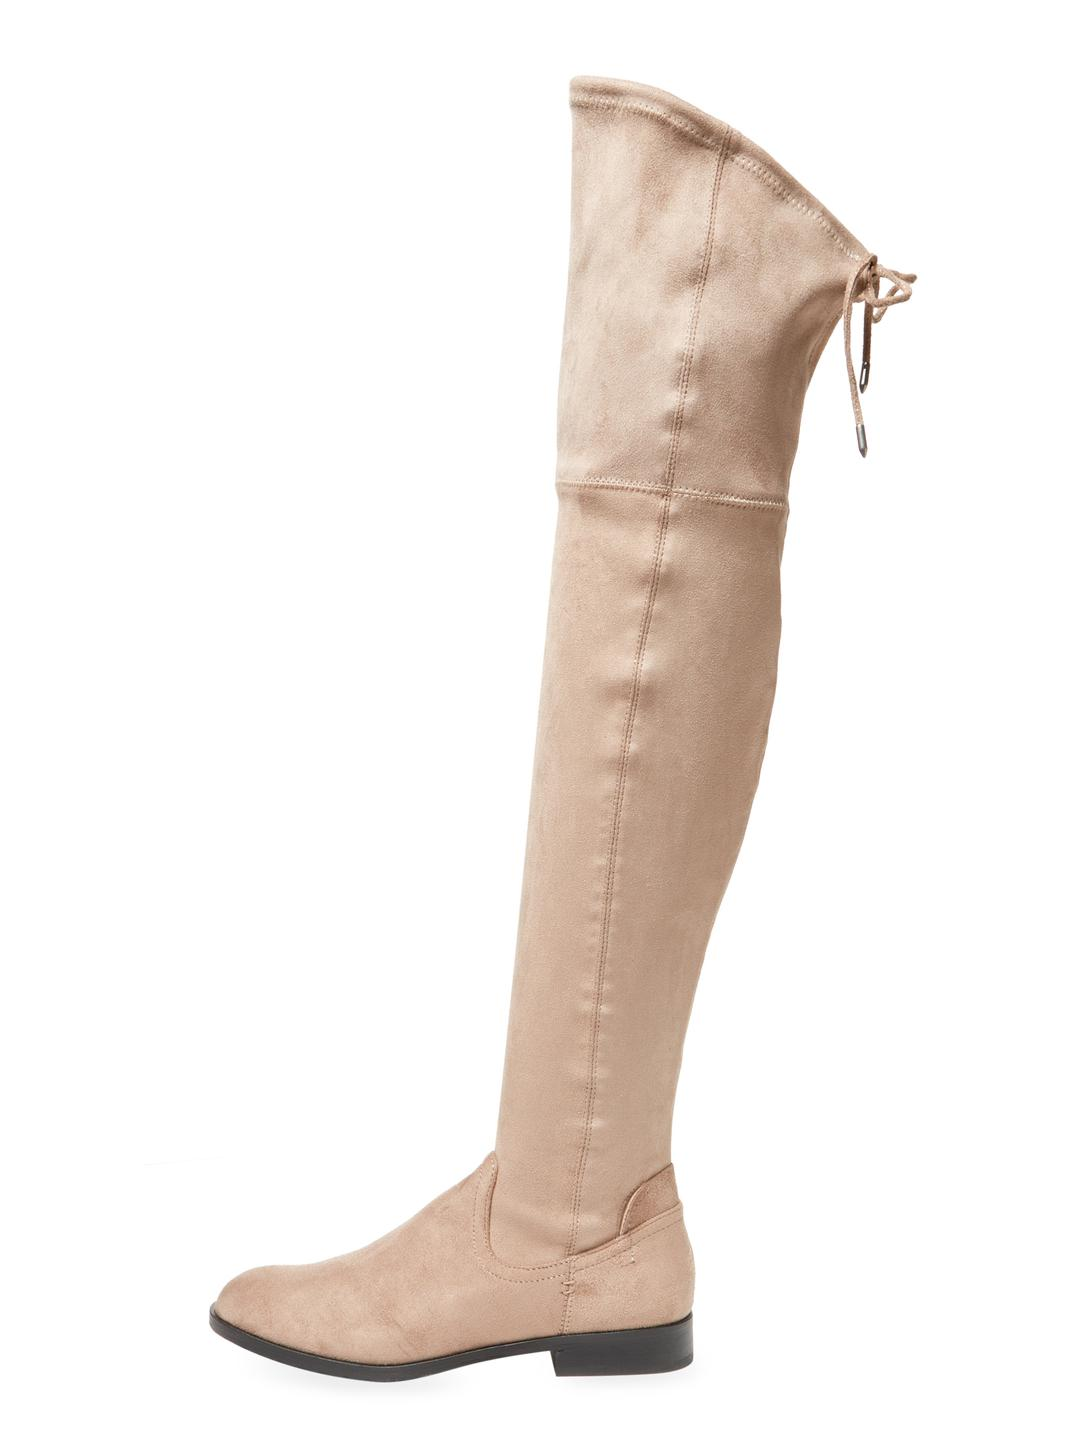 84f04c751c1 Lyst - Dolce Vita Neely Over-the-knee Boot